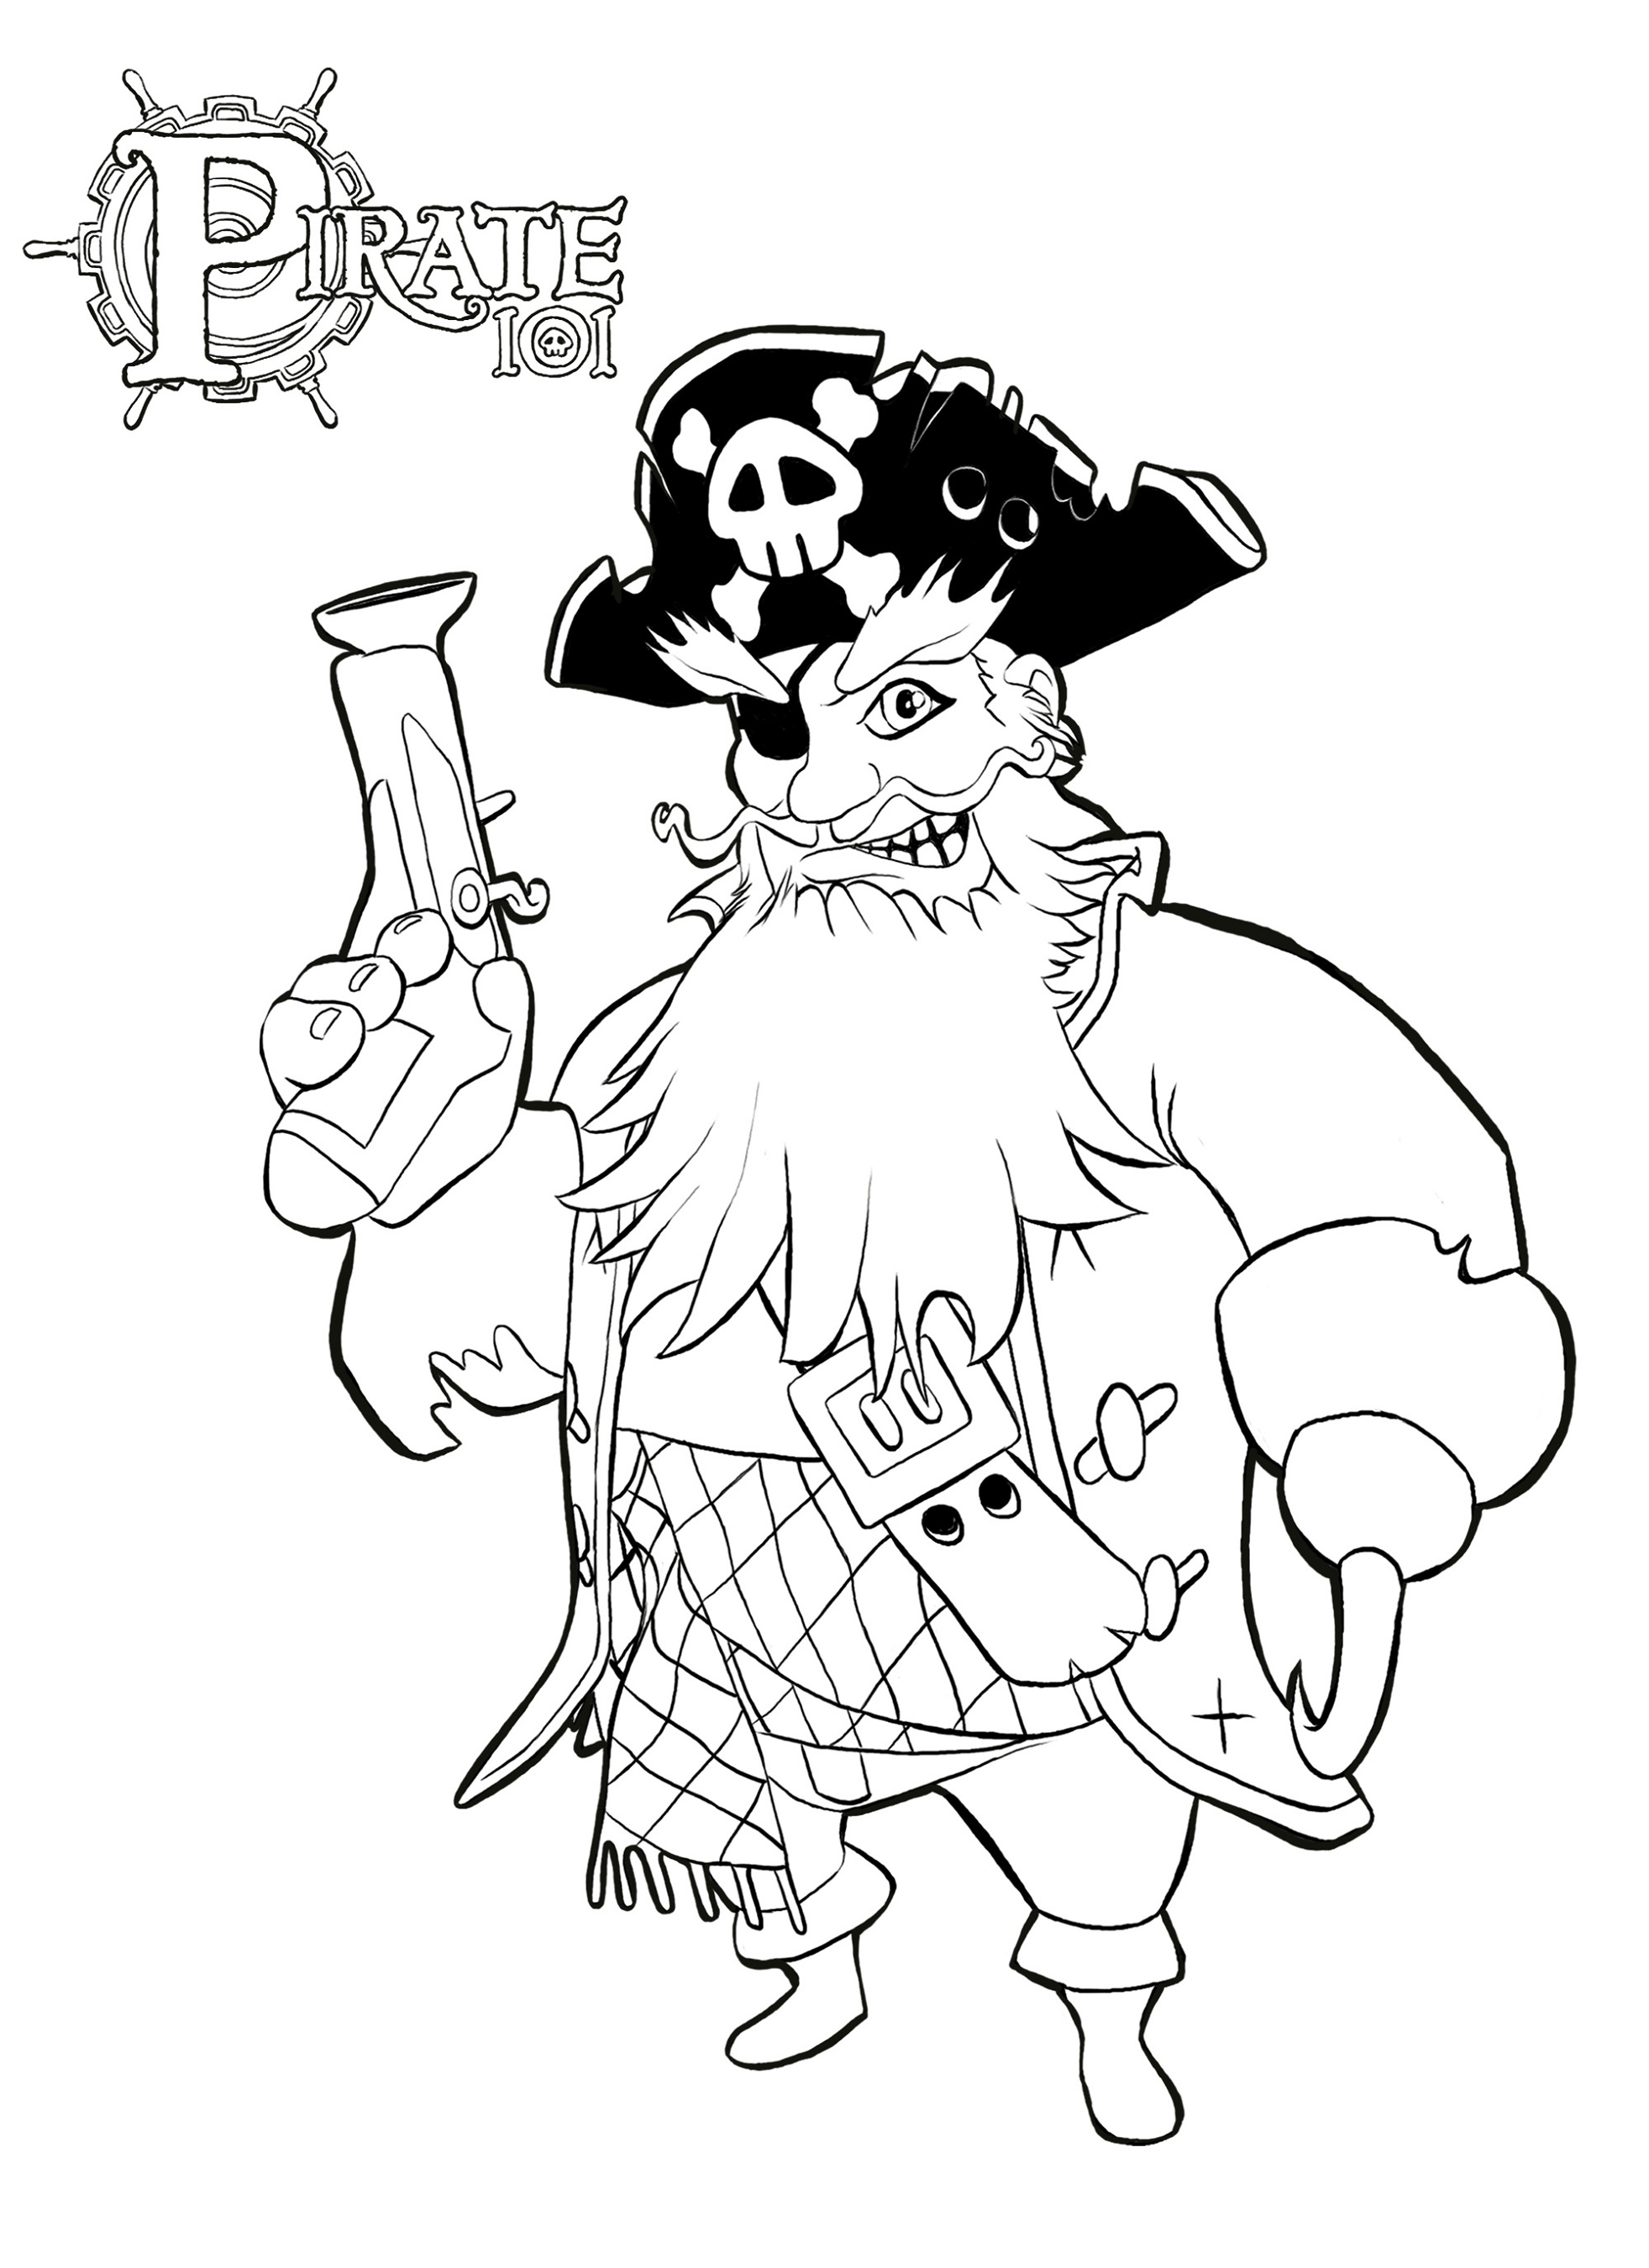 Pirate Coloring Pages Printable